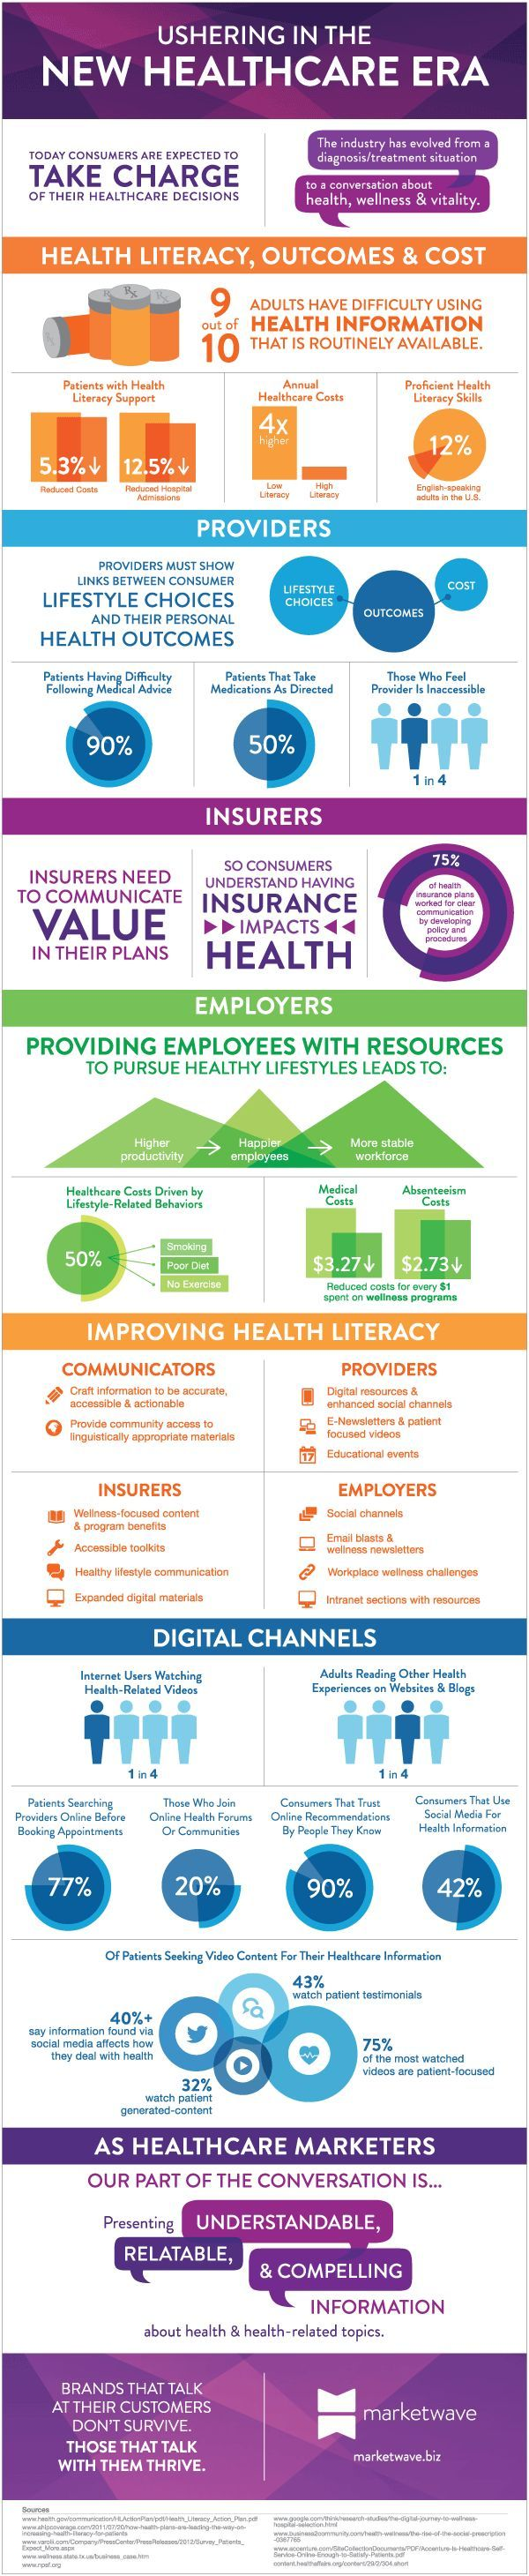 #Health literacy statistics from Ragan's Health Care Communication News... www.healthcaremedicalpharmaceuticaldirectory.com www.linkedin.com/in/johngbaresky/